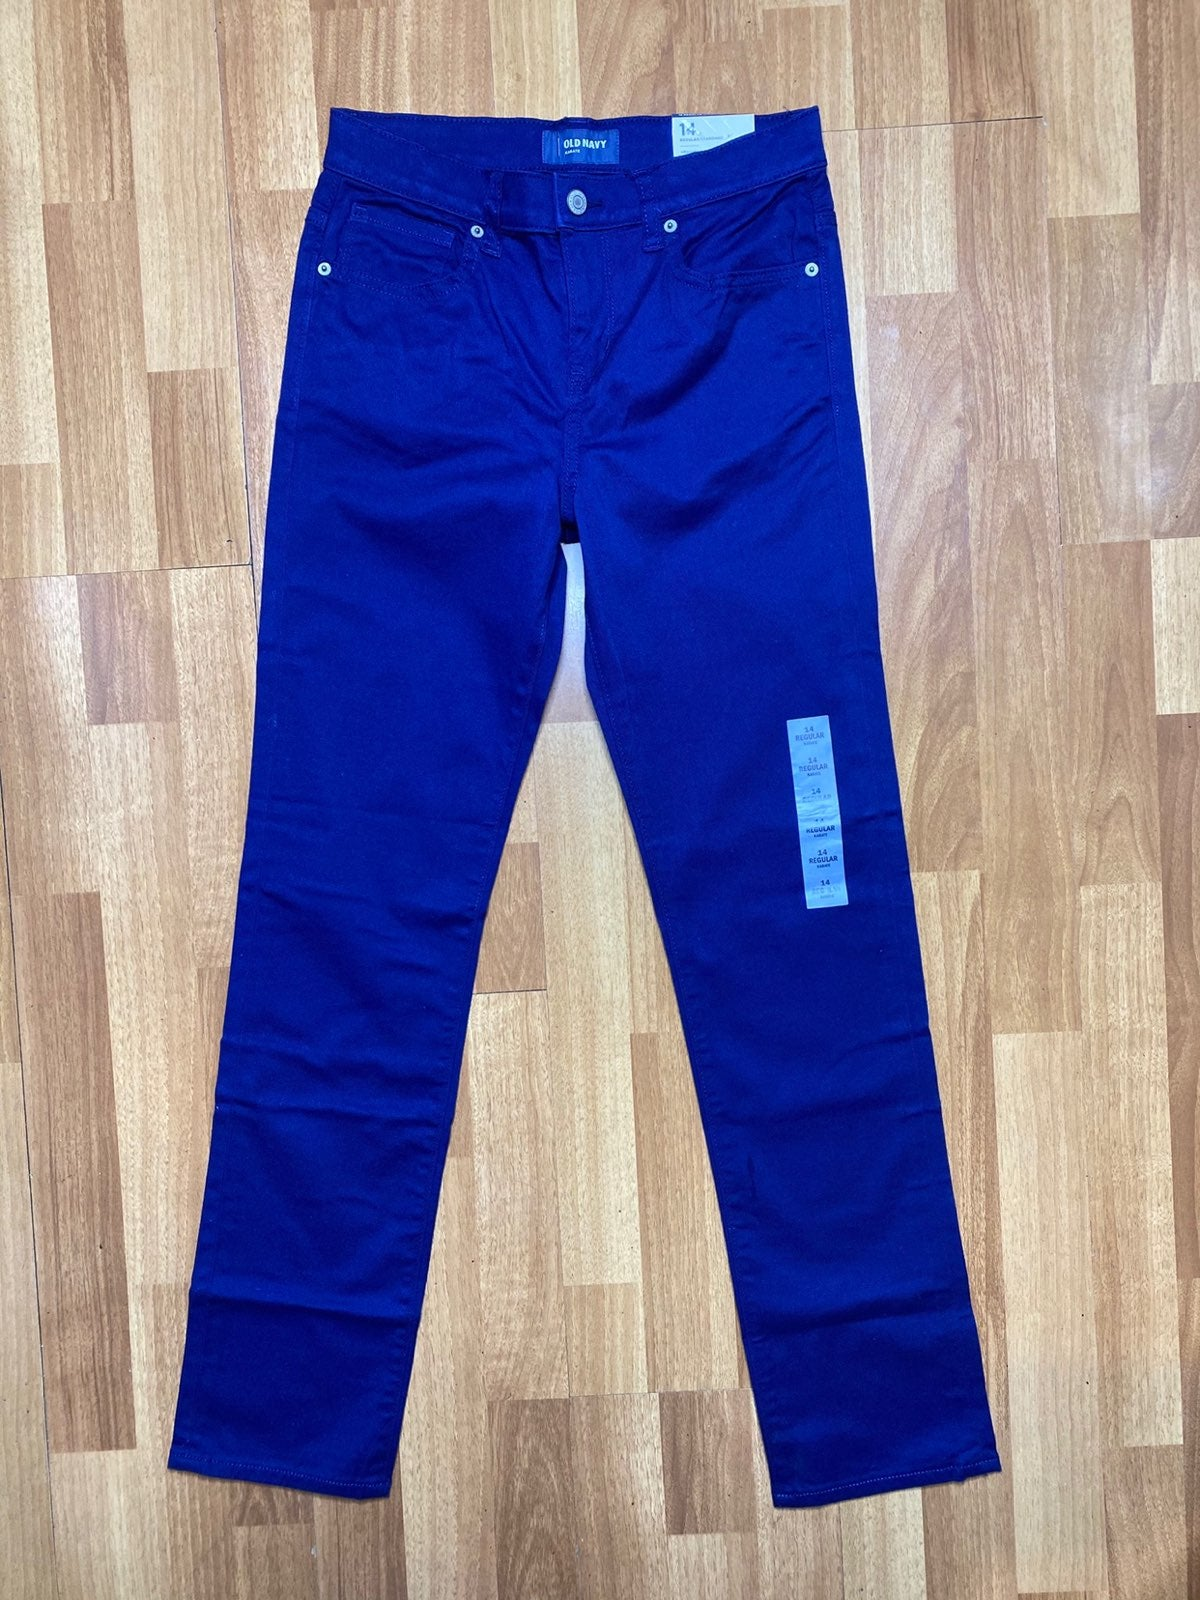 Old Navy Pants Size 14